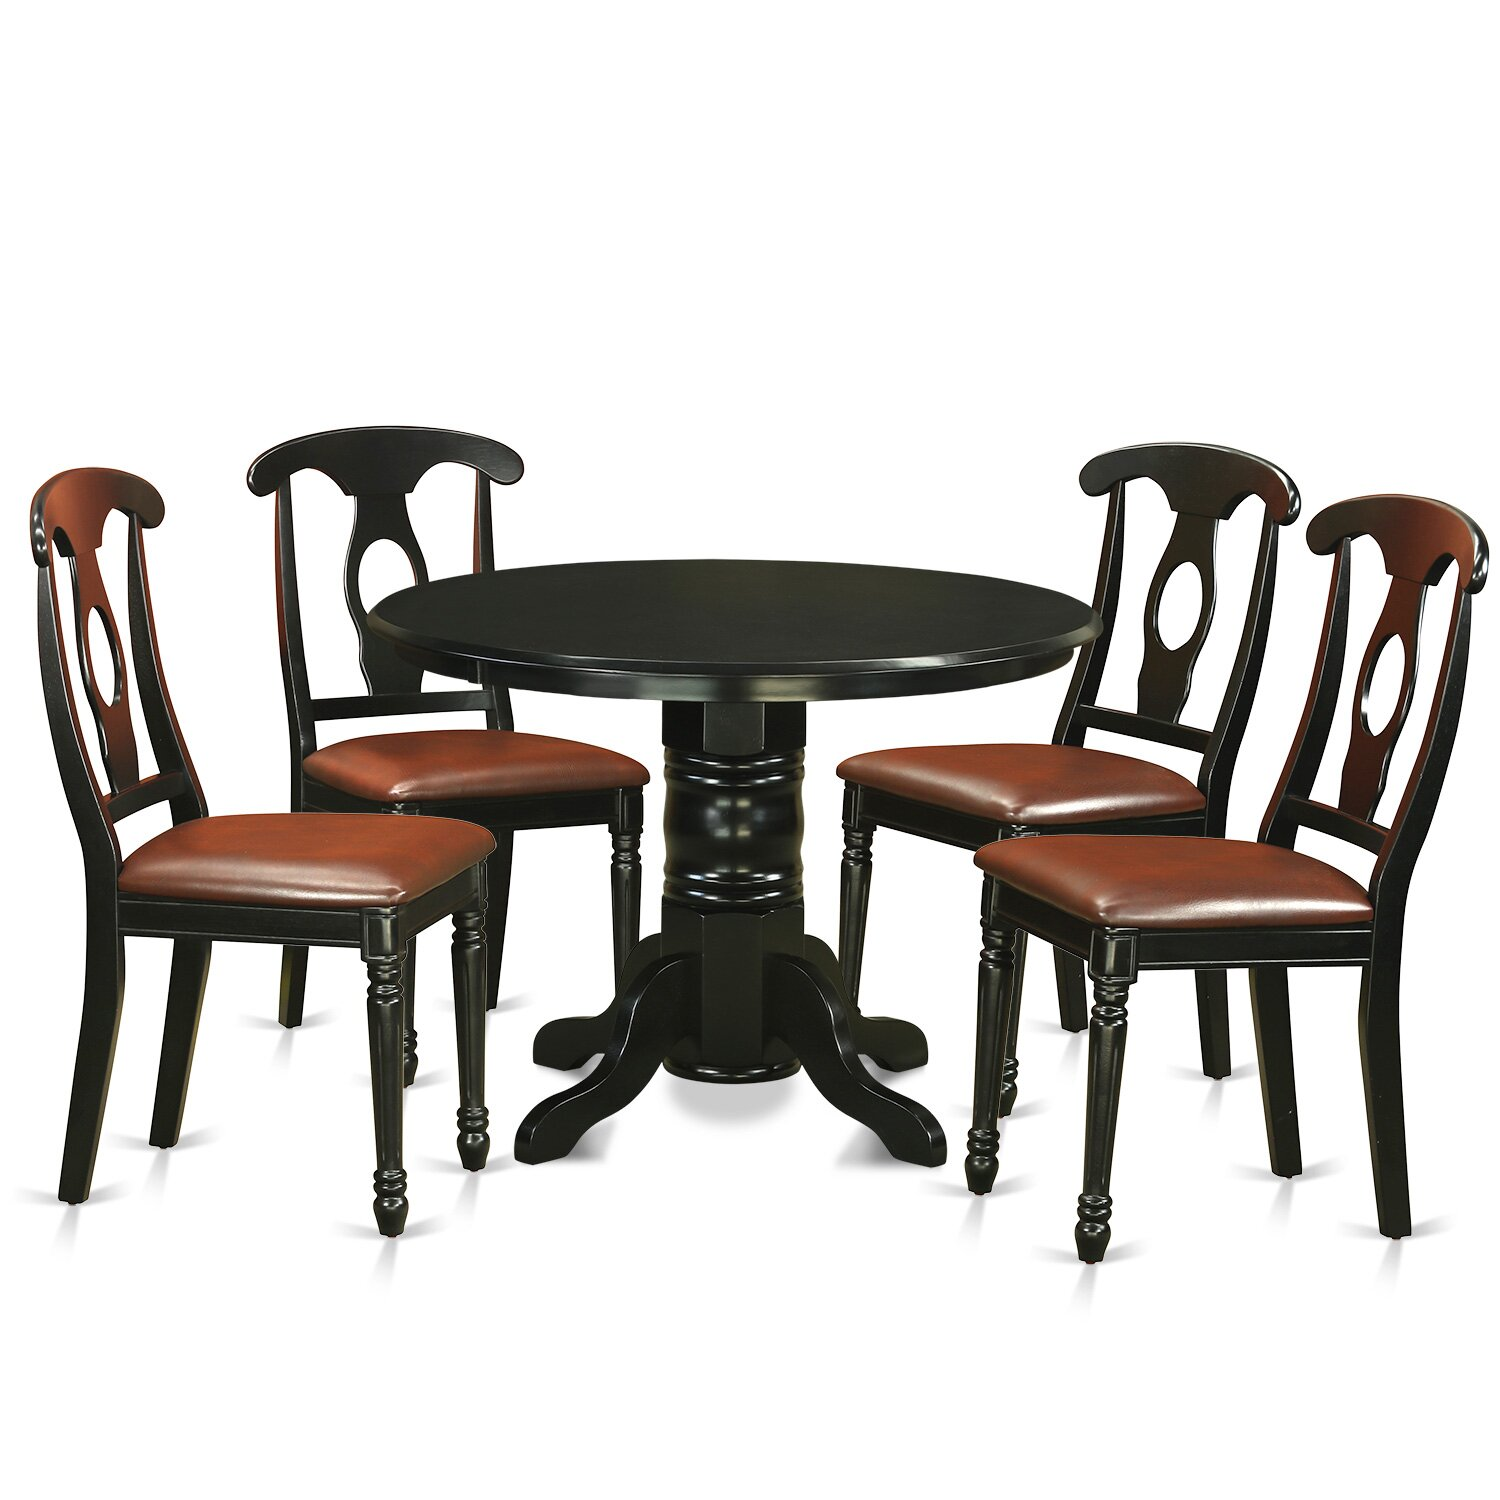 East west shelton 5 piece dining set reviews wayfair for Kitchen table with 4 chairs